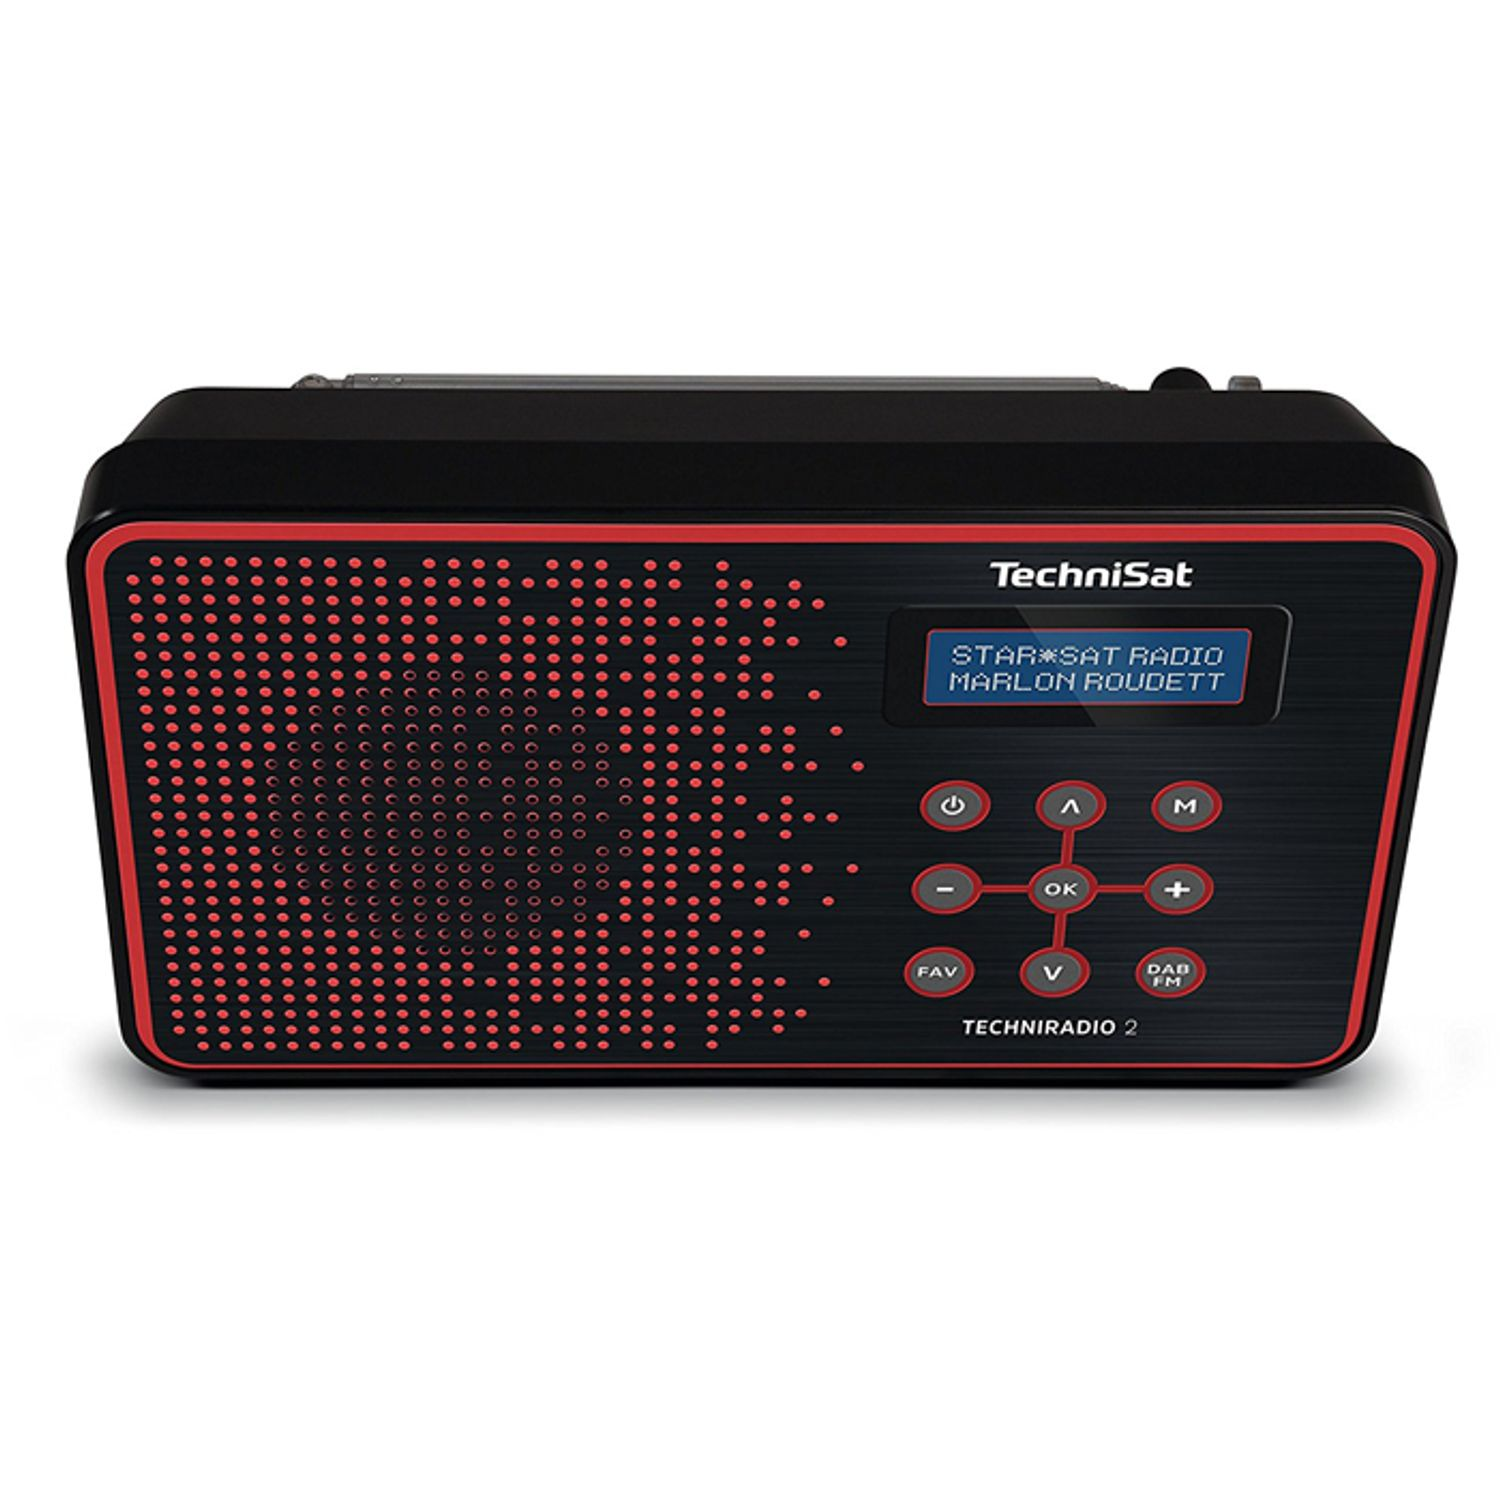 technisat techniradio 2 dab dab digitalradio ukw radio. Black Bedroom Furniture Sets. Home Design Ideas